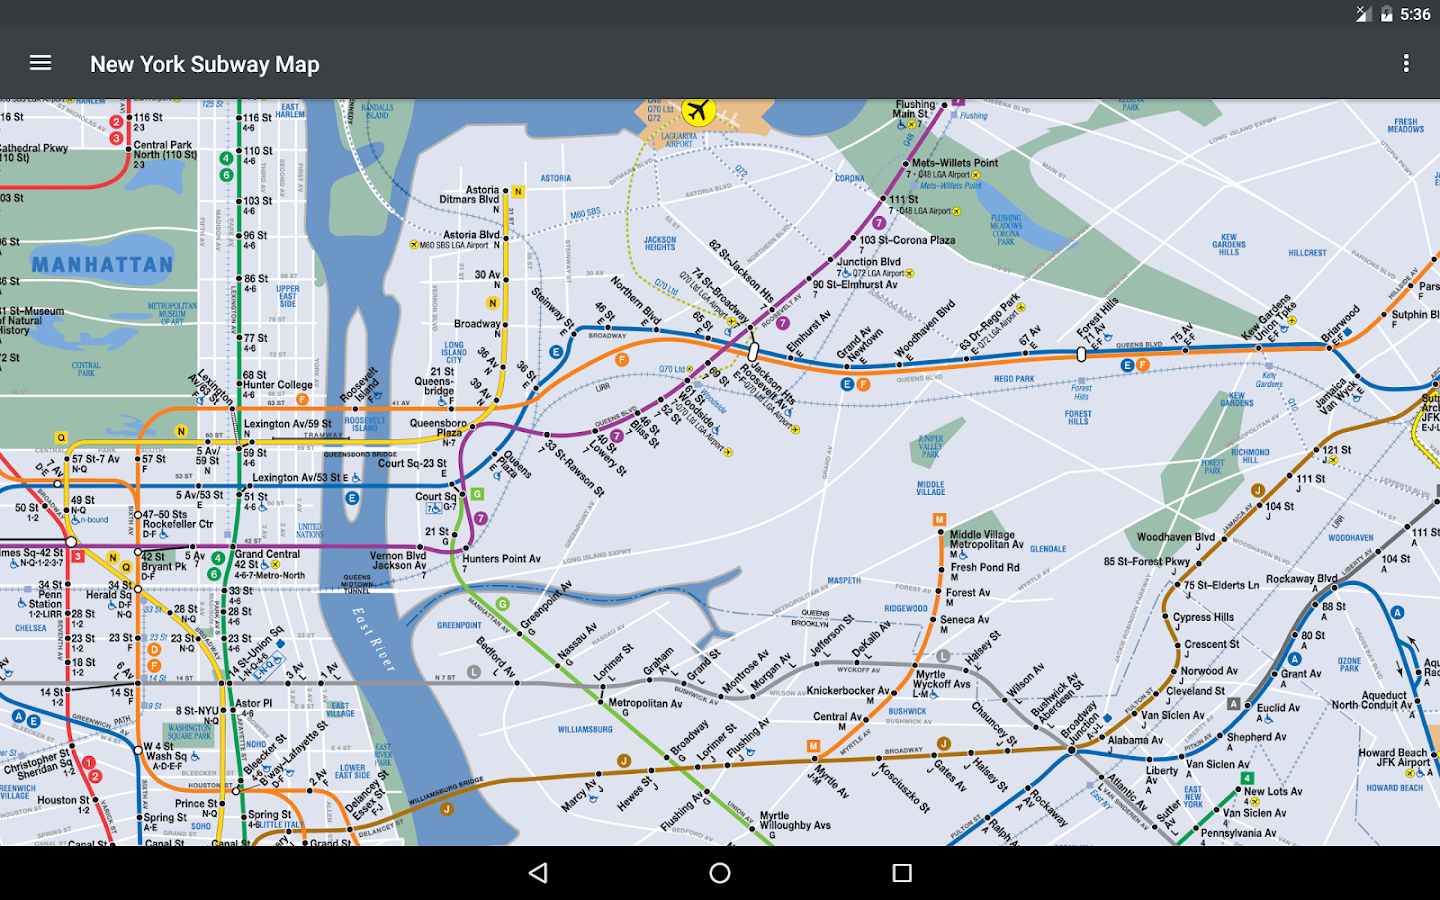 New York Subway Map NYC Android Apps On Google Play - Nyc subway map j train